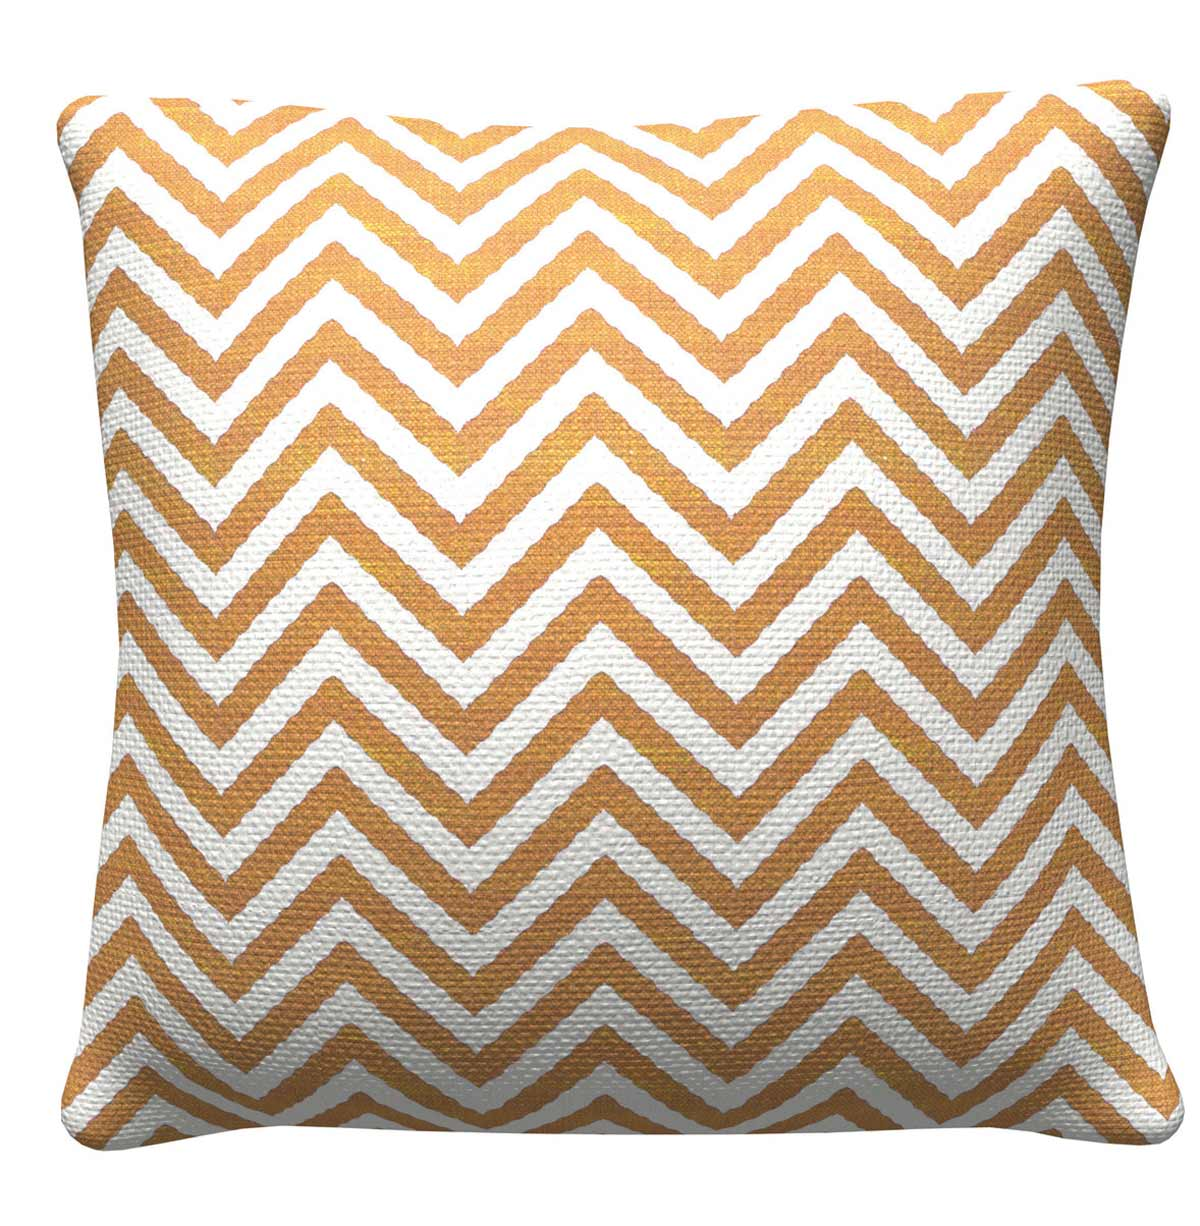 905310 Orange Chevron Pillow